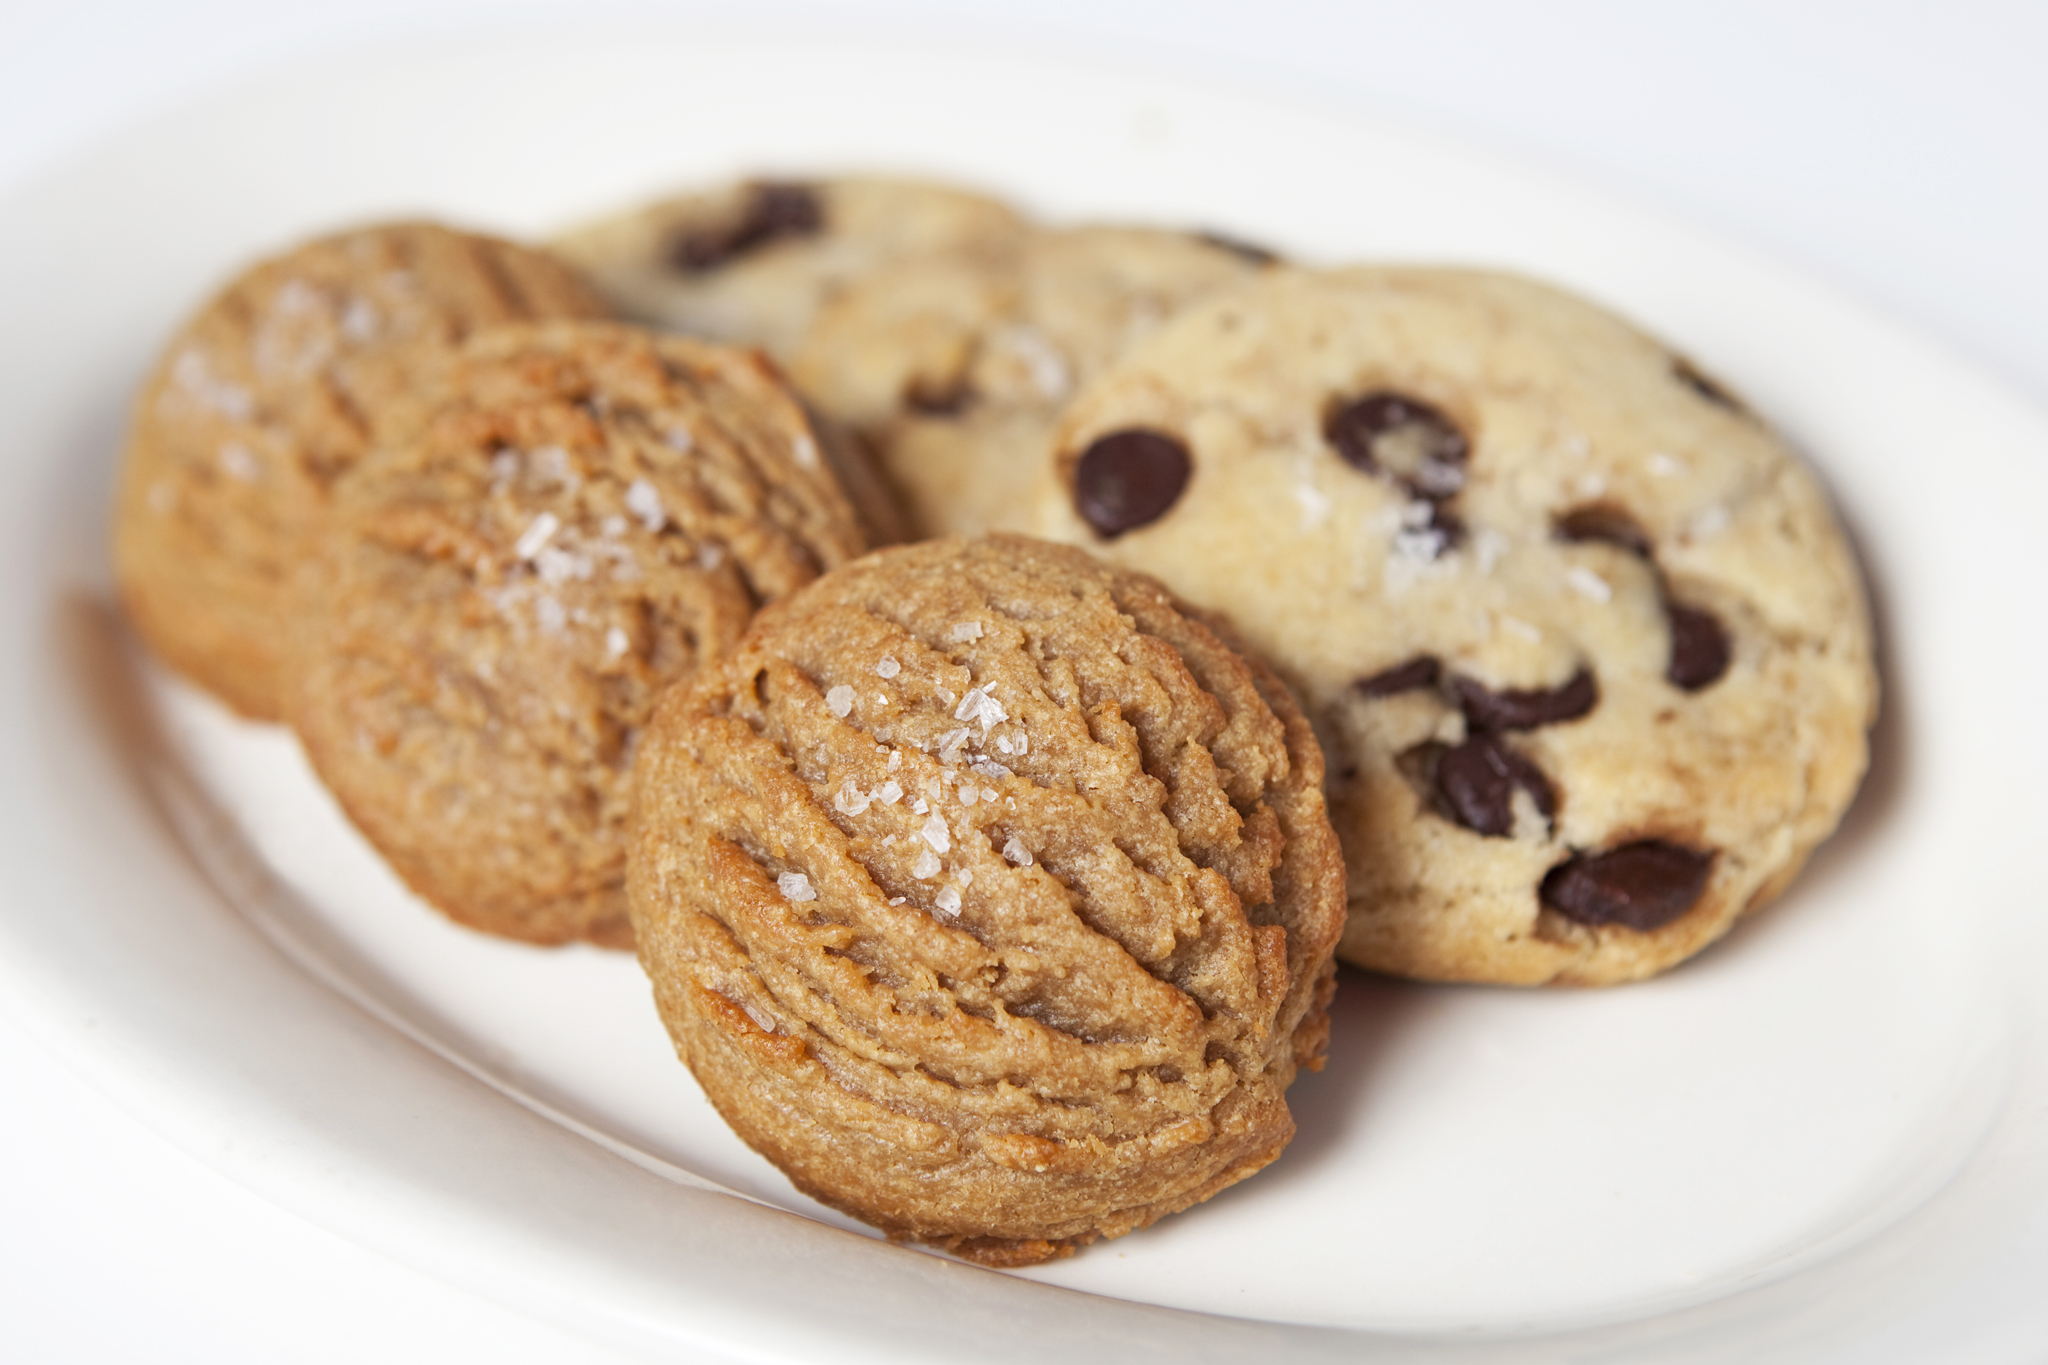 Peanut butter cookie from Ovenly